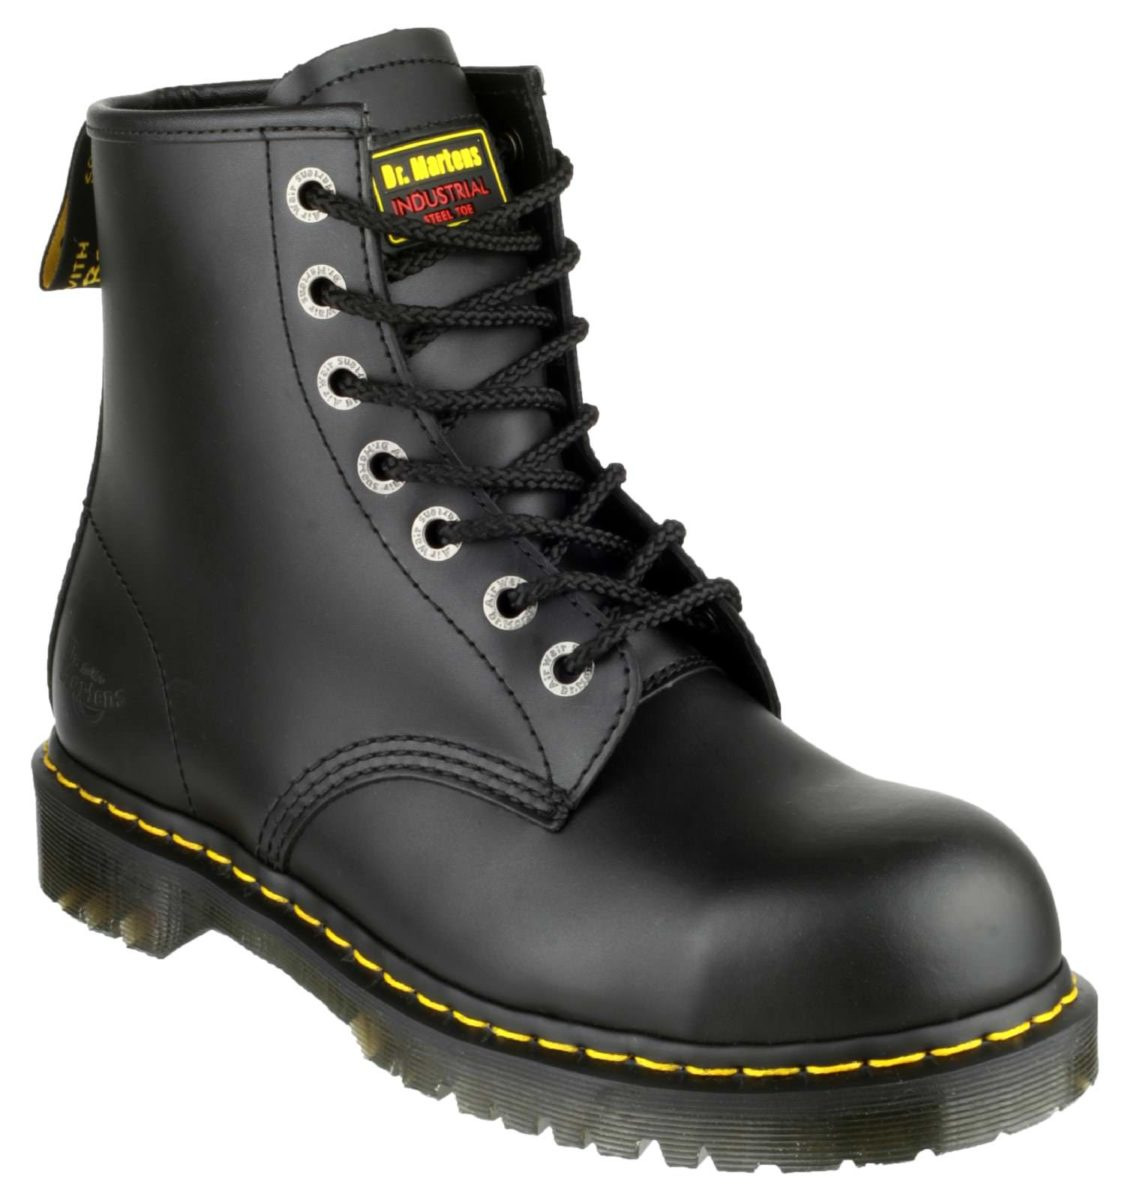 Dr Martens FS64 Black 7-Eyelet Safety Boot